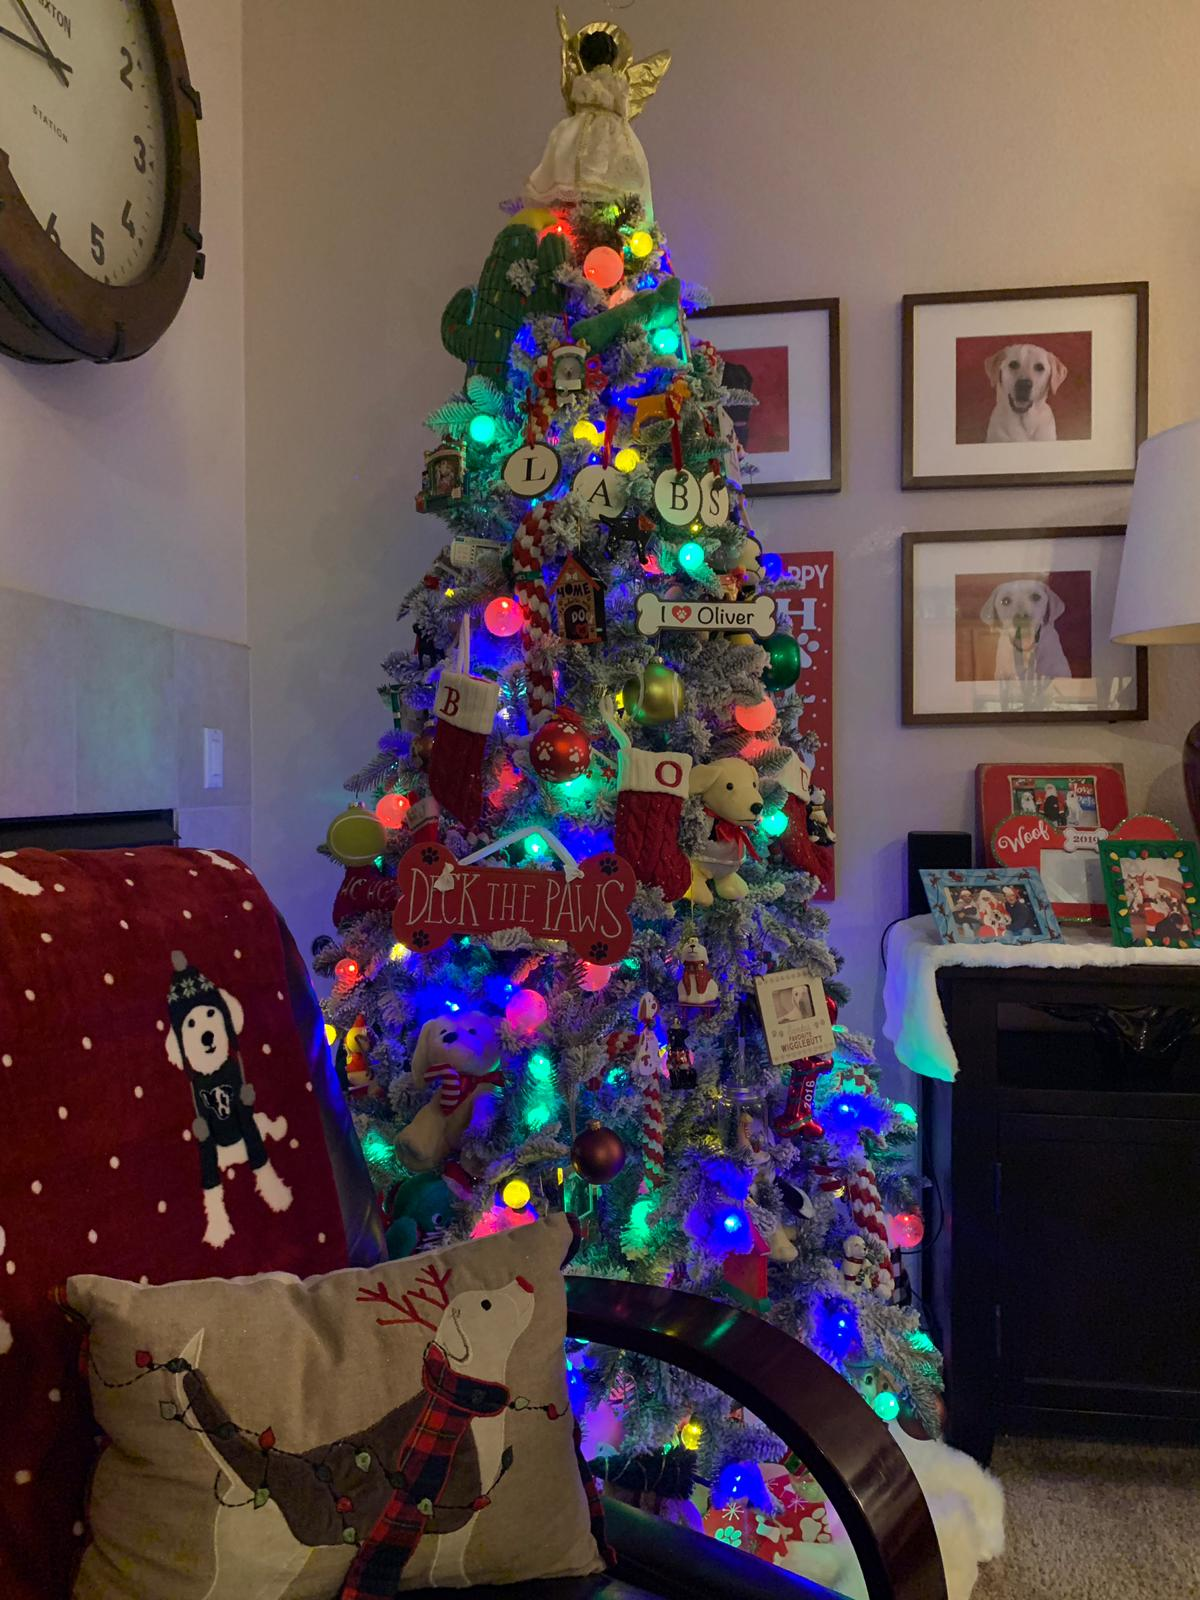 Christmas tree with many, many coloured bulbs, and dog puns like deck the paws and other dog related decorations on.